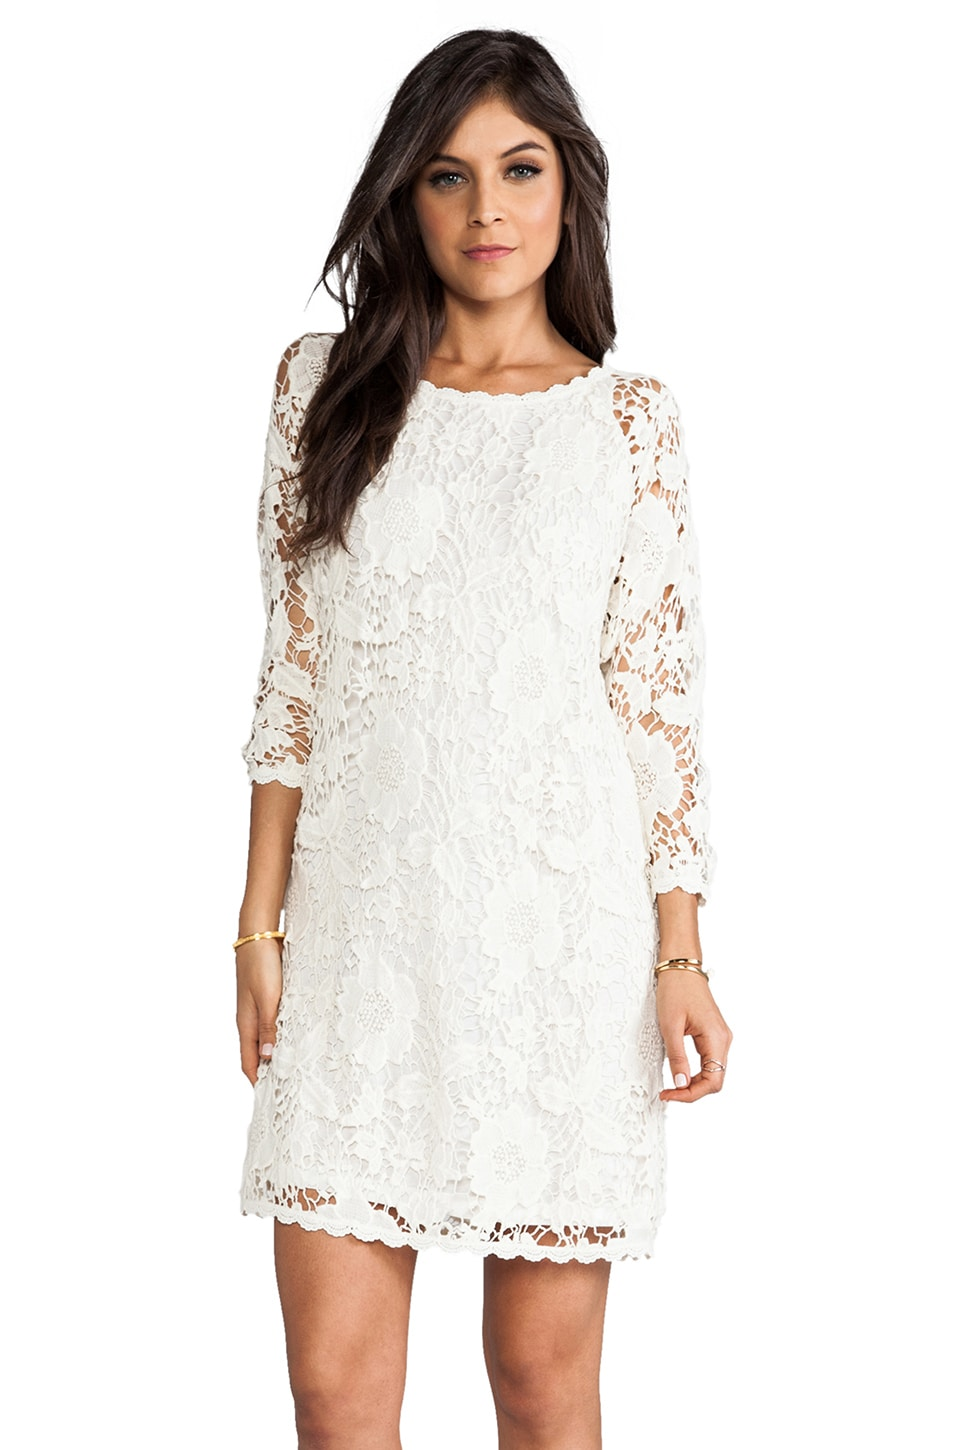 Velvet by Graham & Spencer Leslea Cotton Crochet Dress in Off White